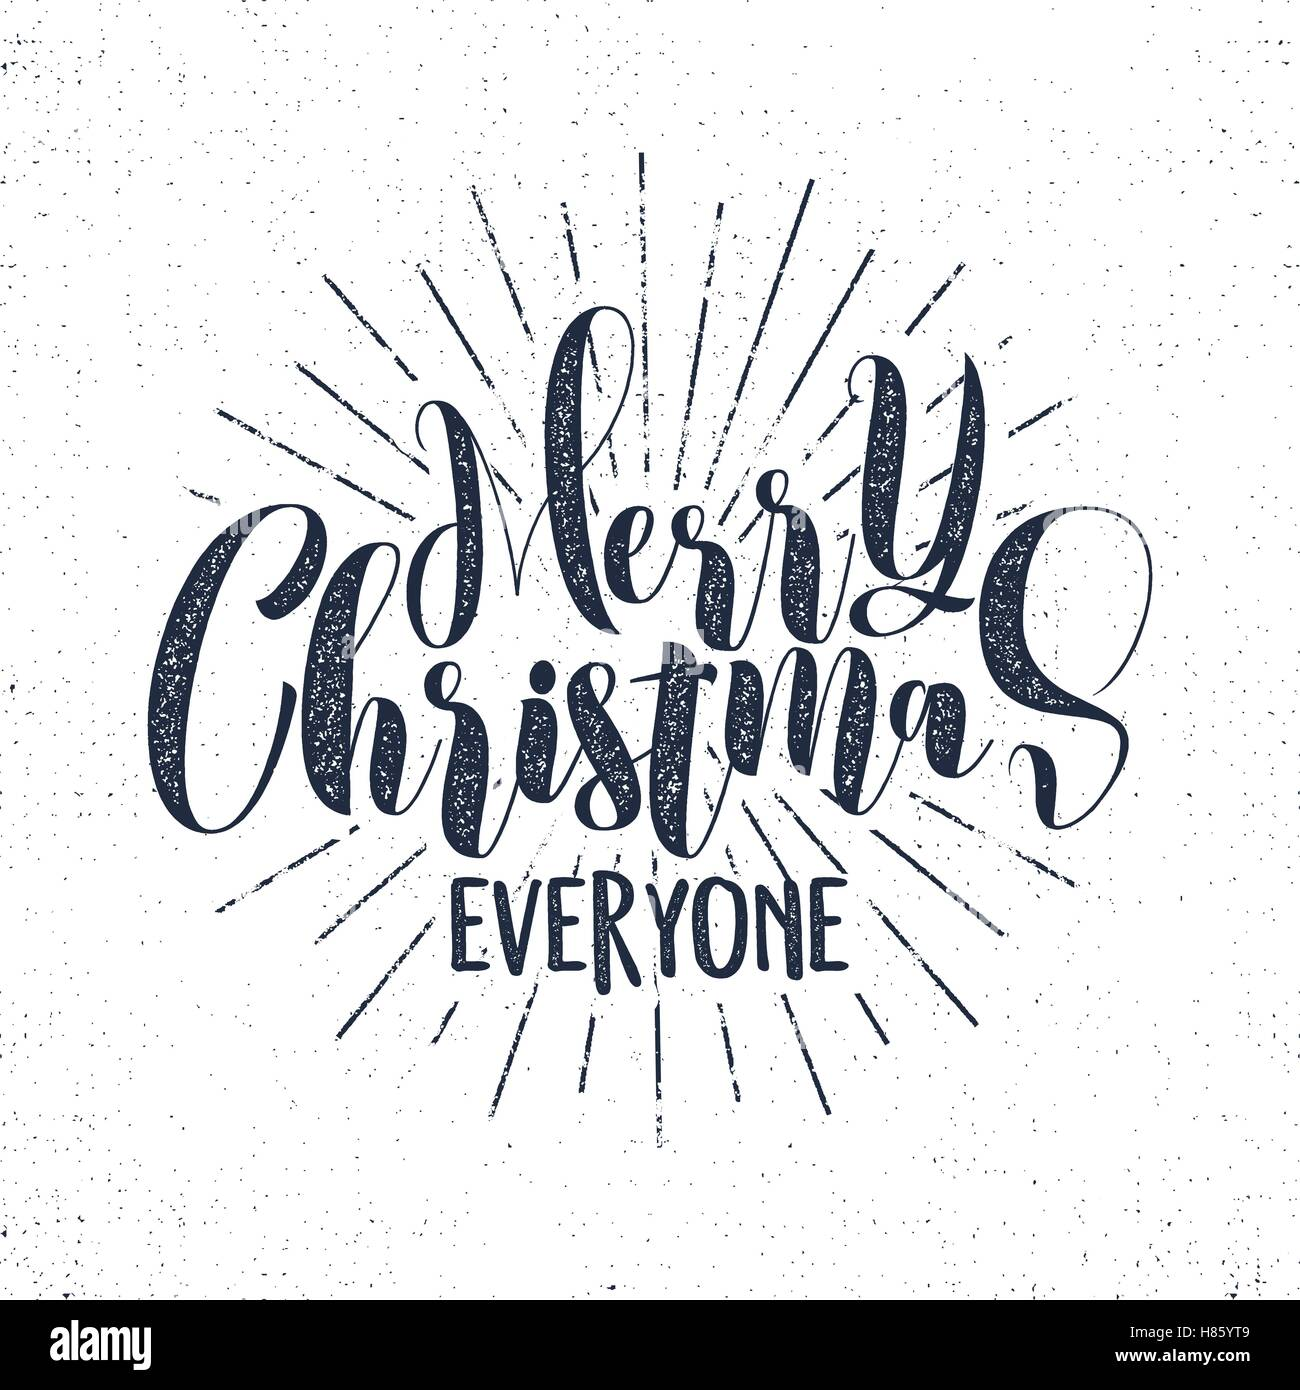 Merry christmas everyone lettering holiday wishe sayings and stock merry christmas everyone lettering holiday wishe sayings and vintage label seasons greetings calligraphy seasonal typography design vector monochrome m4hsunfo